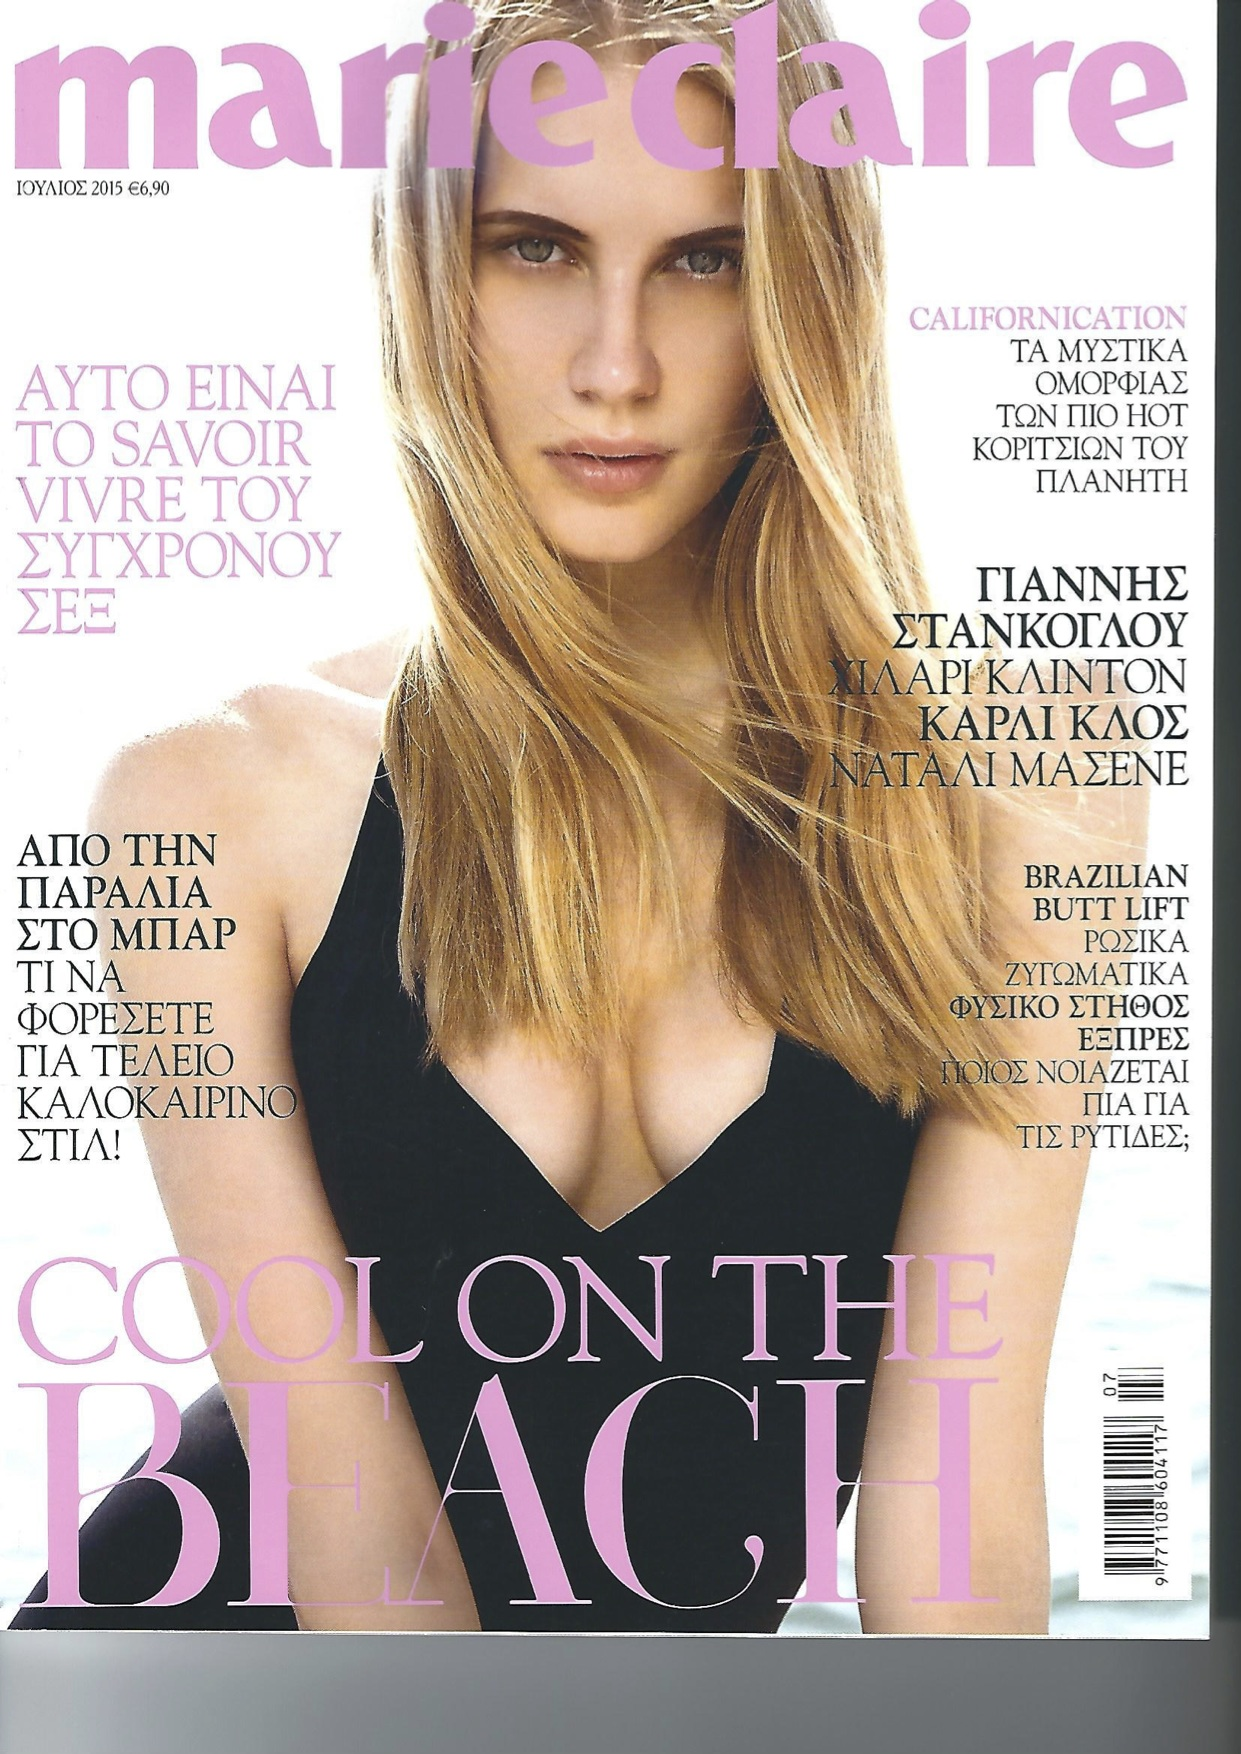 13.marie_claire (1) copy.jpg